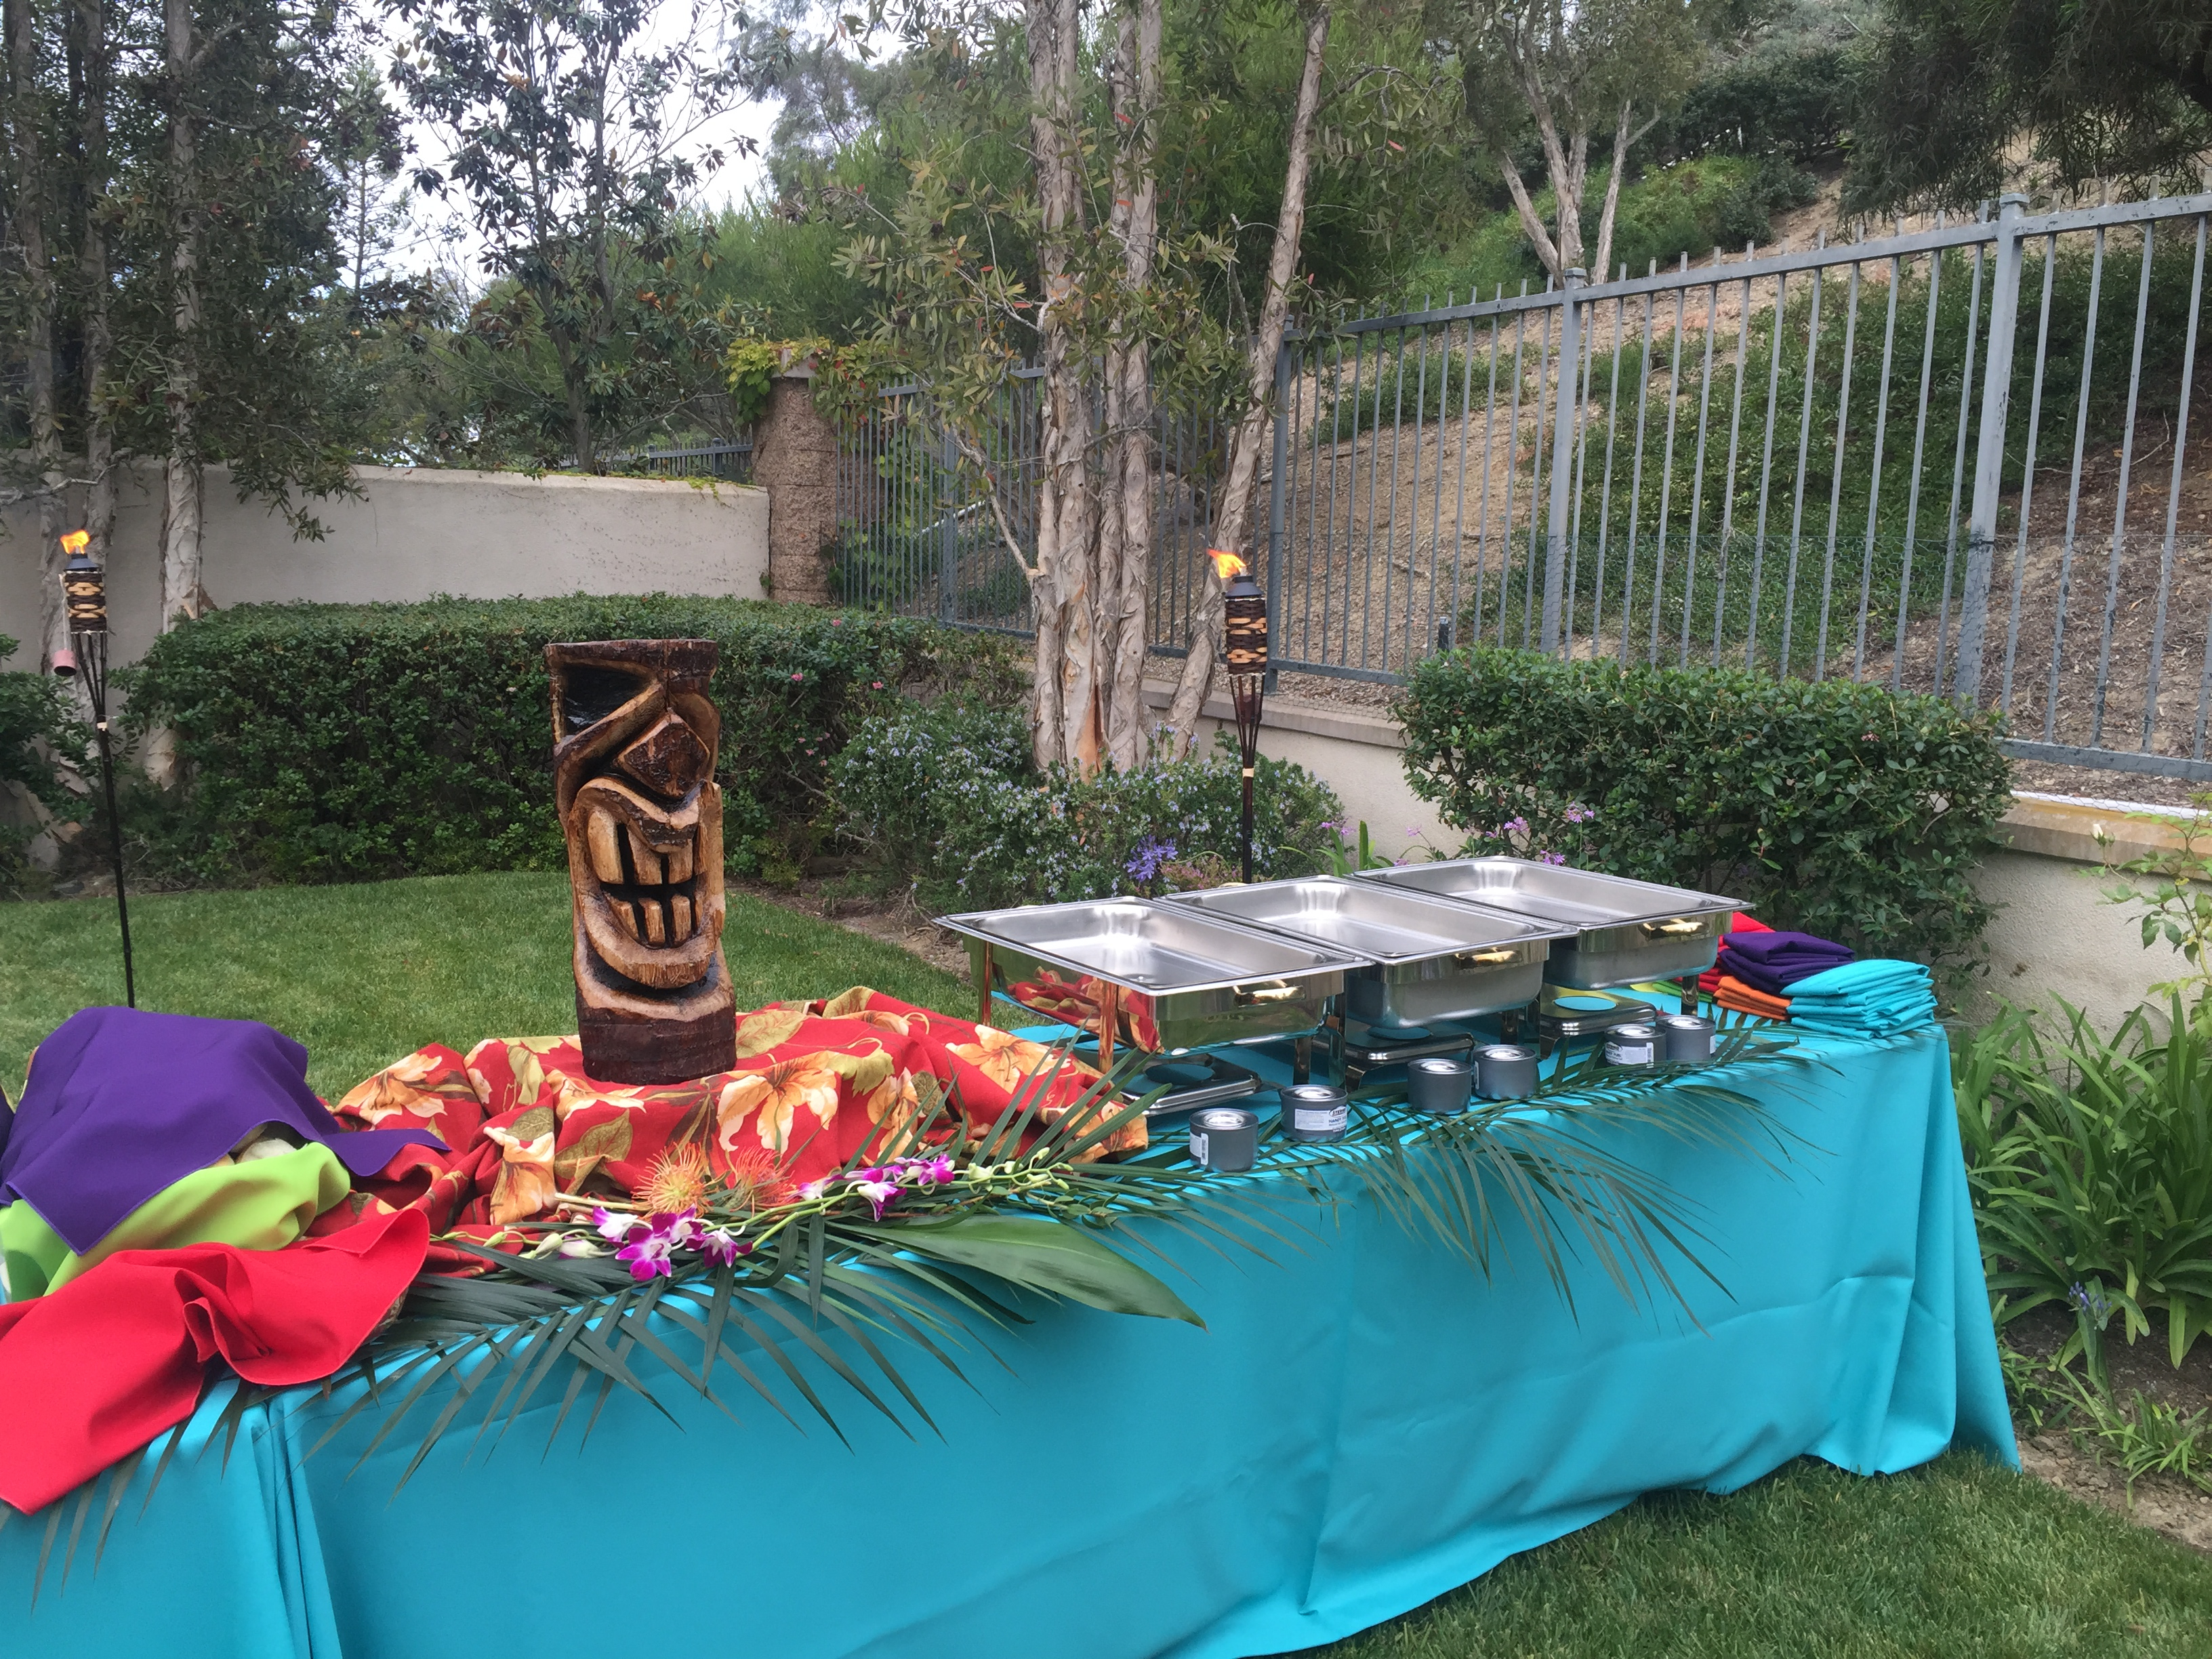 Backyard Luau At Your Service Catering Coordination Weddings in 14 Some of the Coolest Tricks of How to Improve Backyard Luau Party Ideas